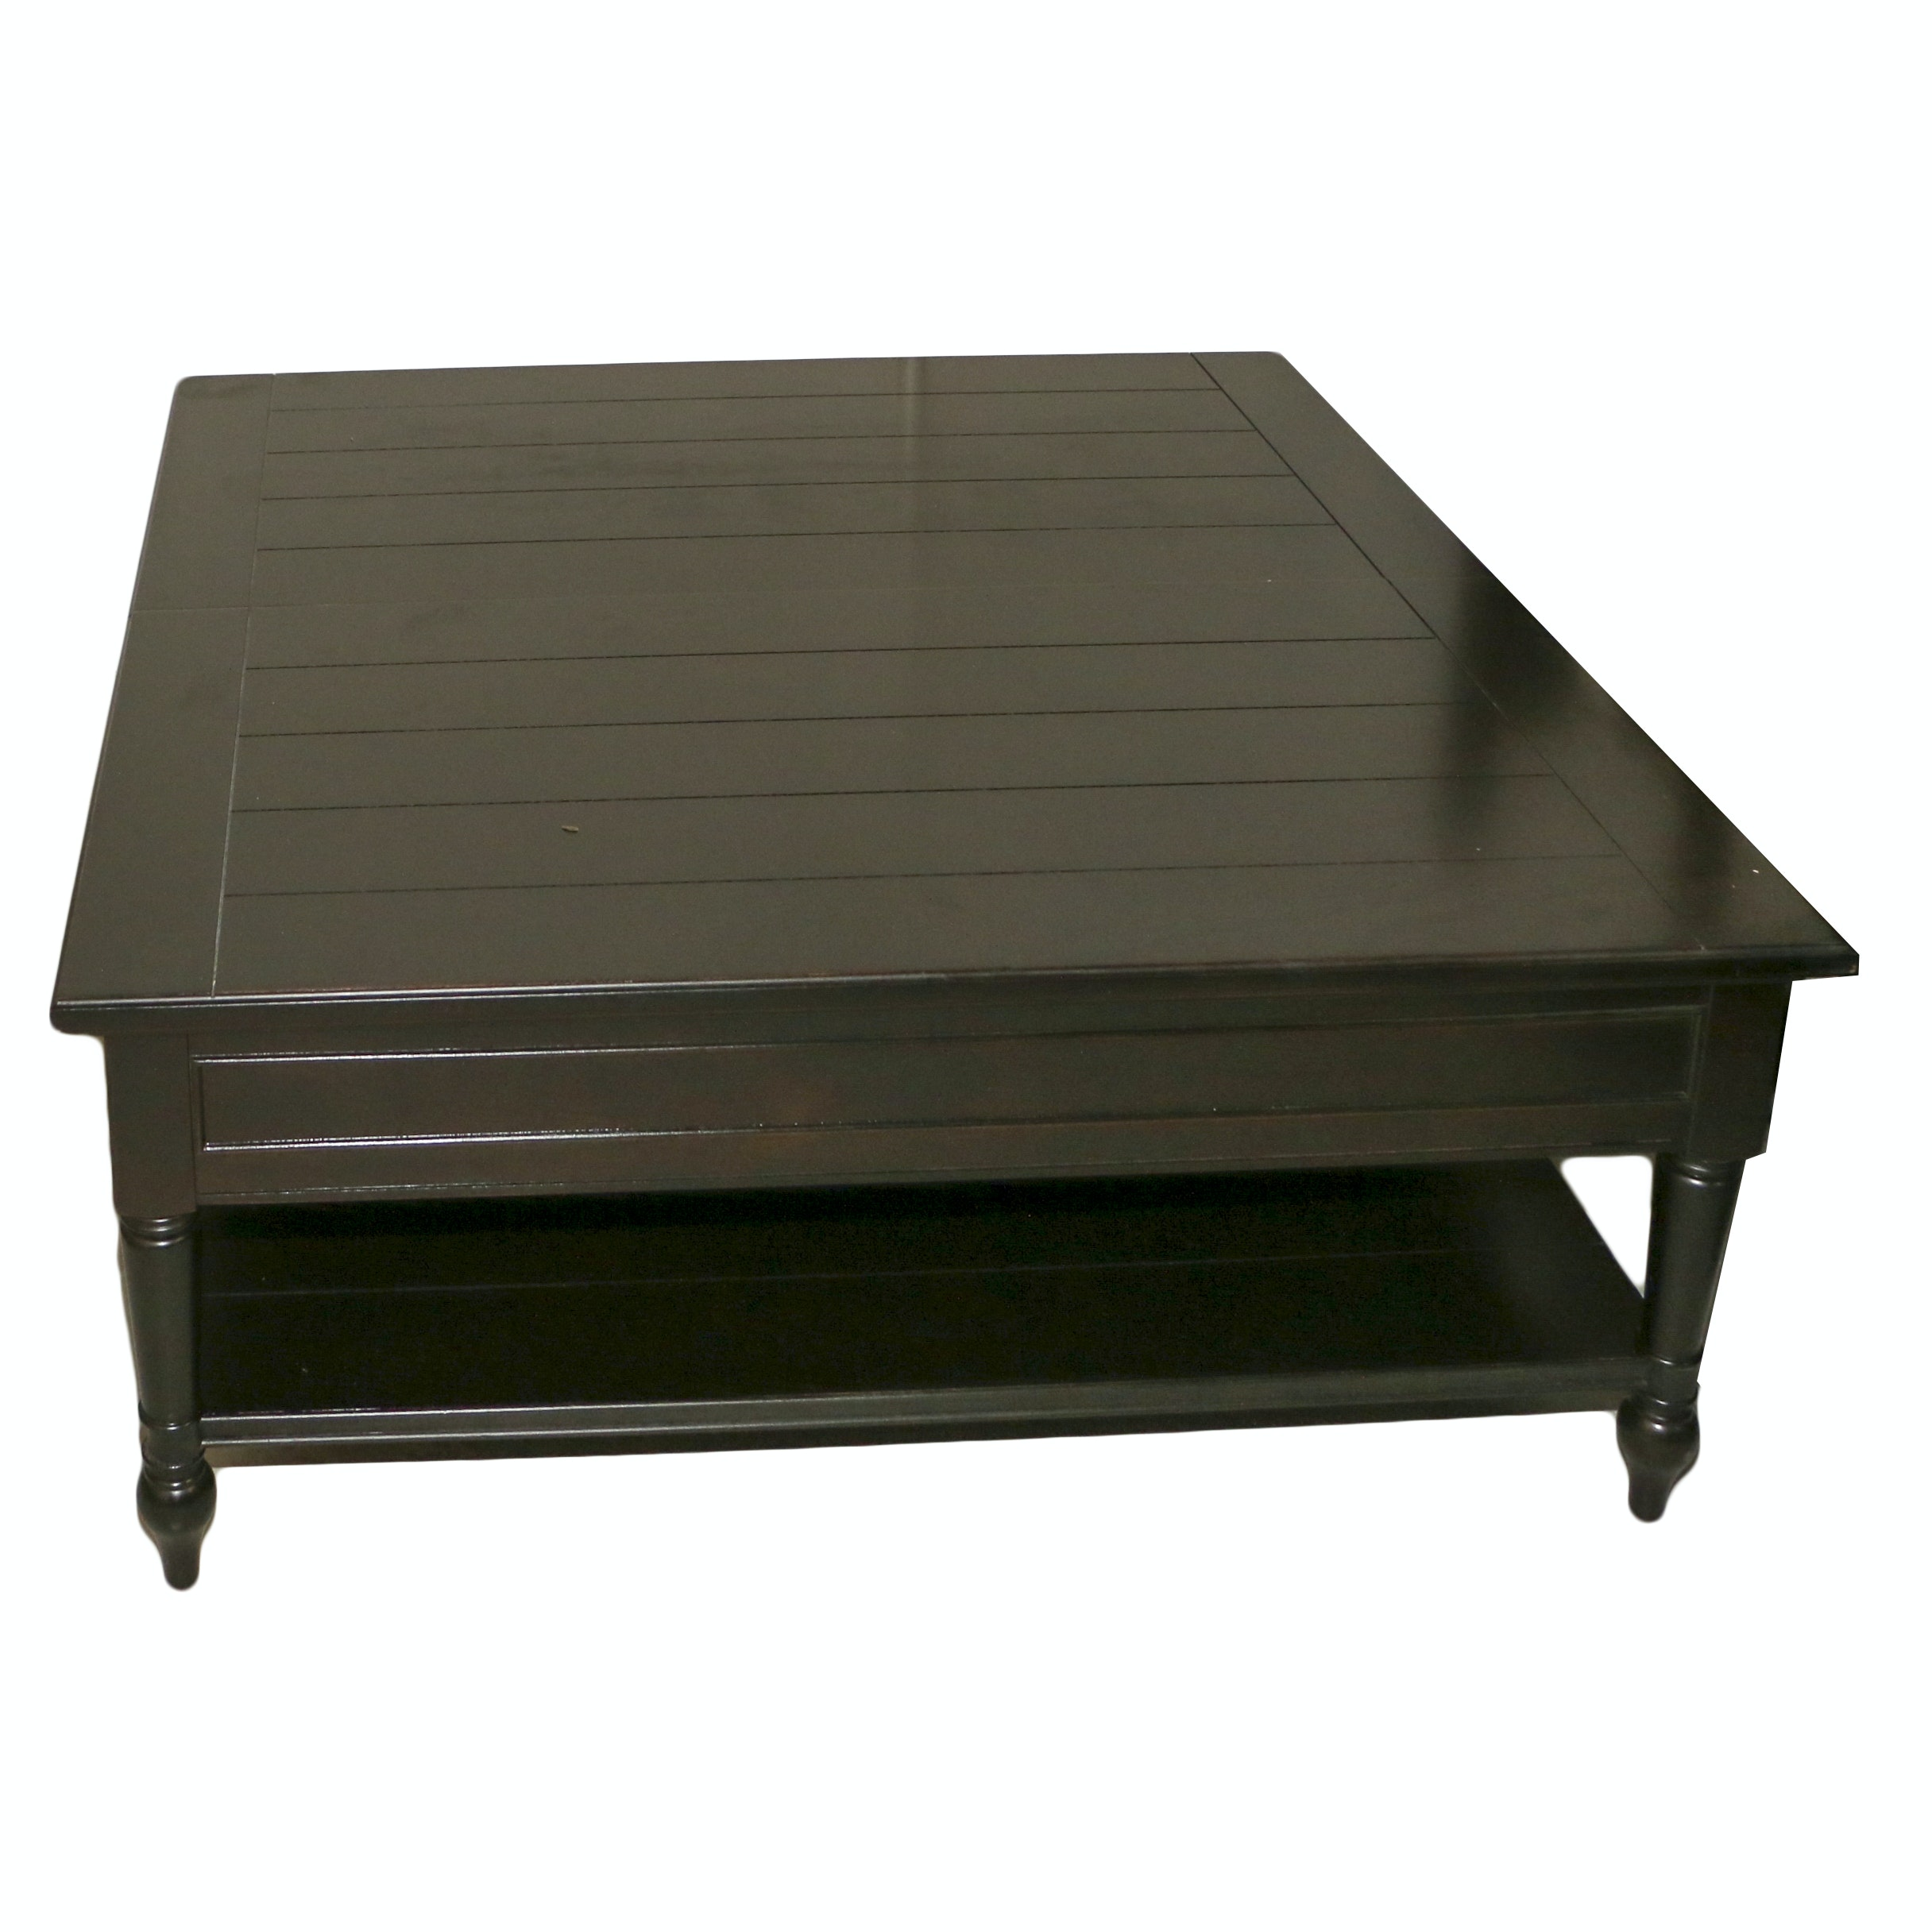 Contemporary Dark Stained Wood Two-Tier Coffee Table